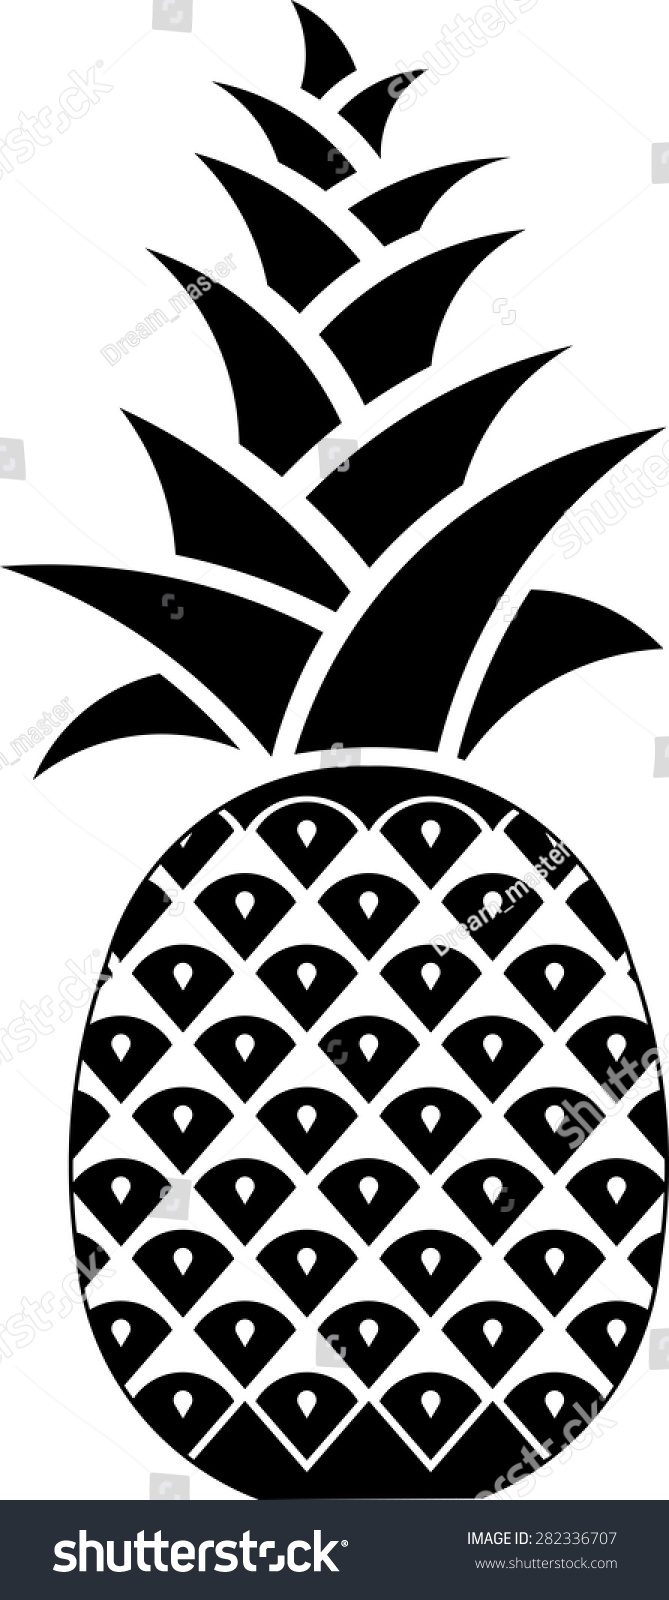 Icon Pineapple Symbol Hospitality Editable Vector Stock Vector